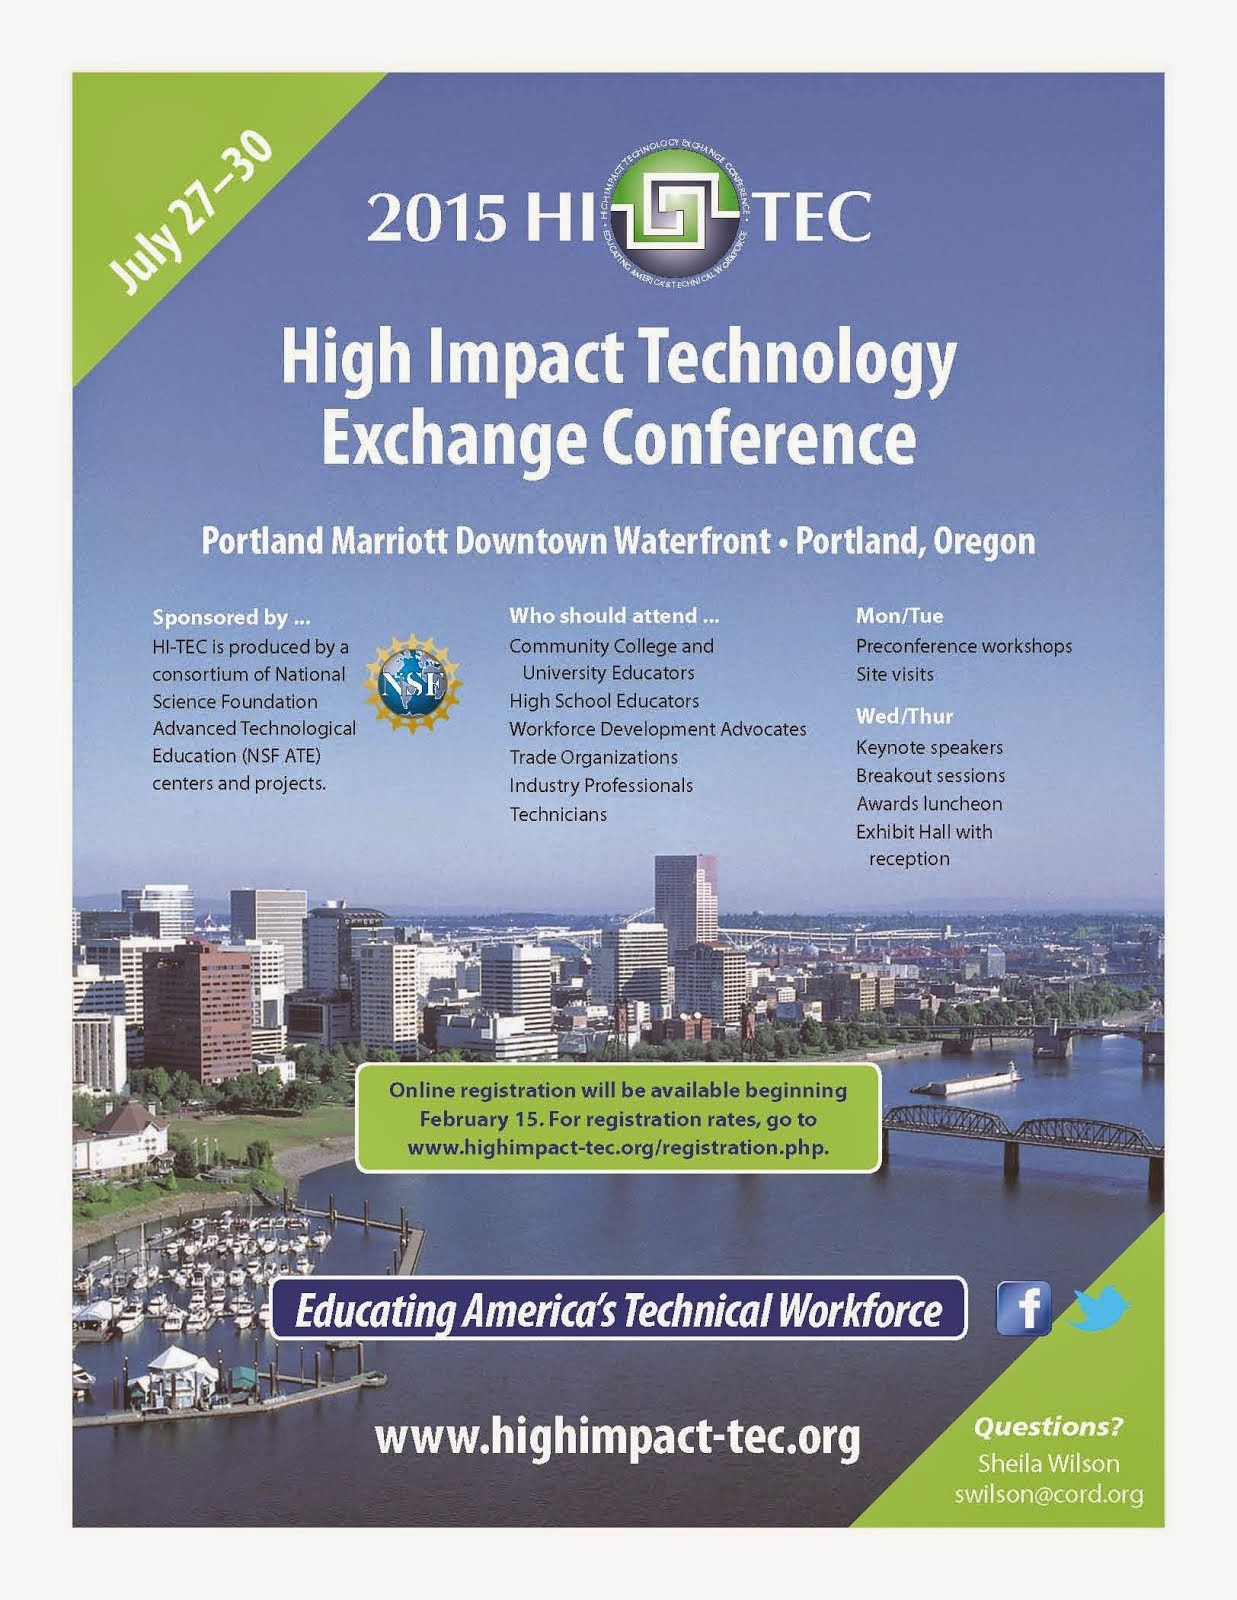 HI-TEC Conference & FLATE Sessions